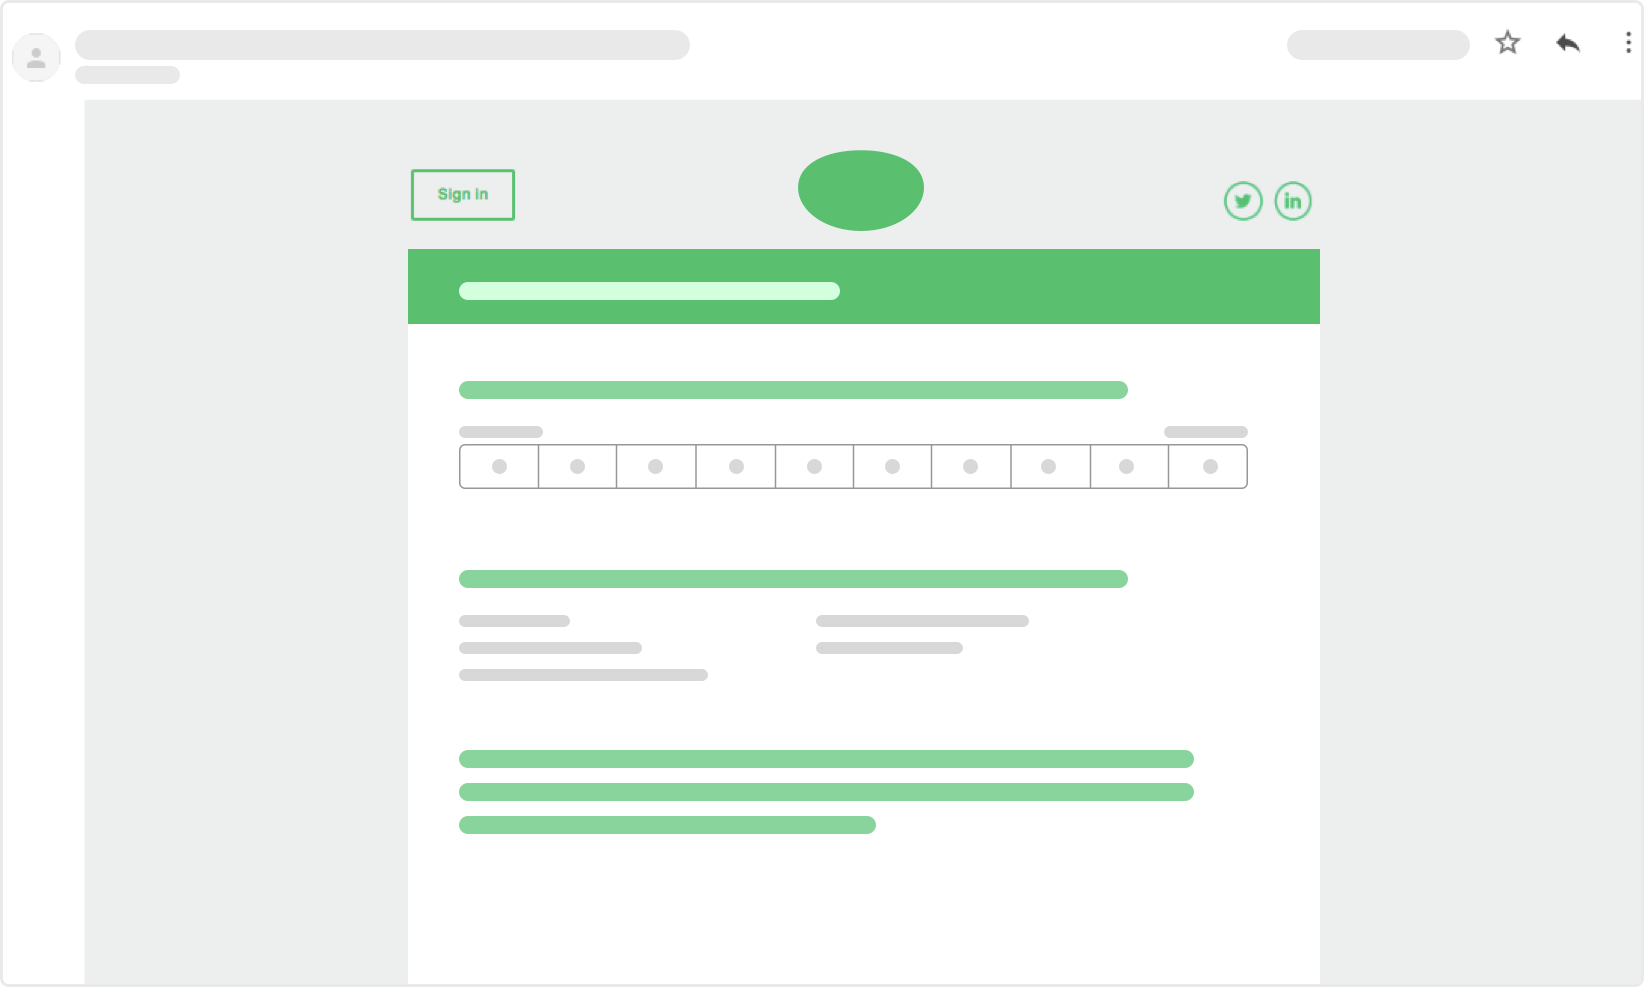 SurveyMonkey doesn't come with white-label features to brand surveys.